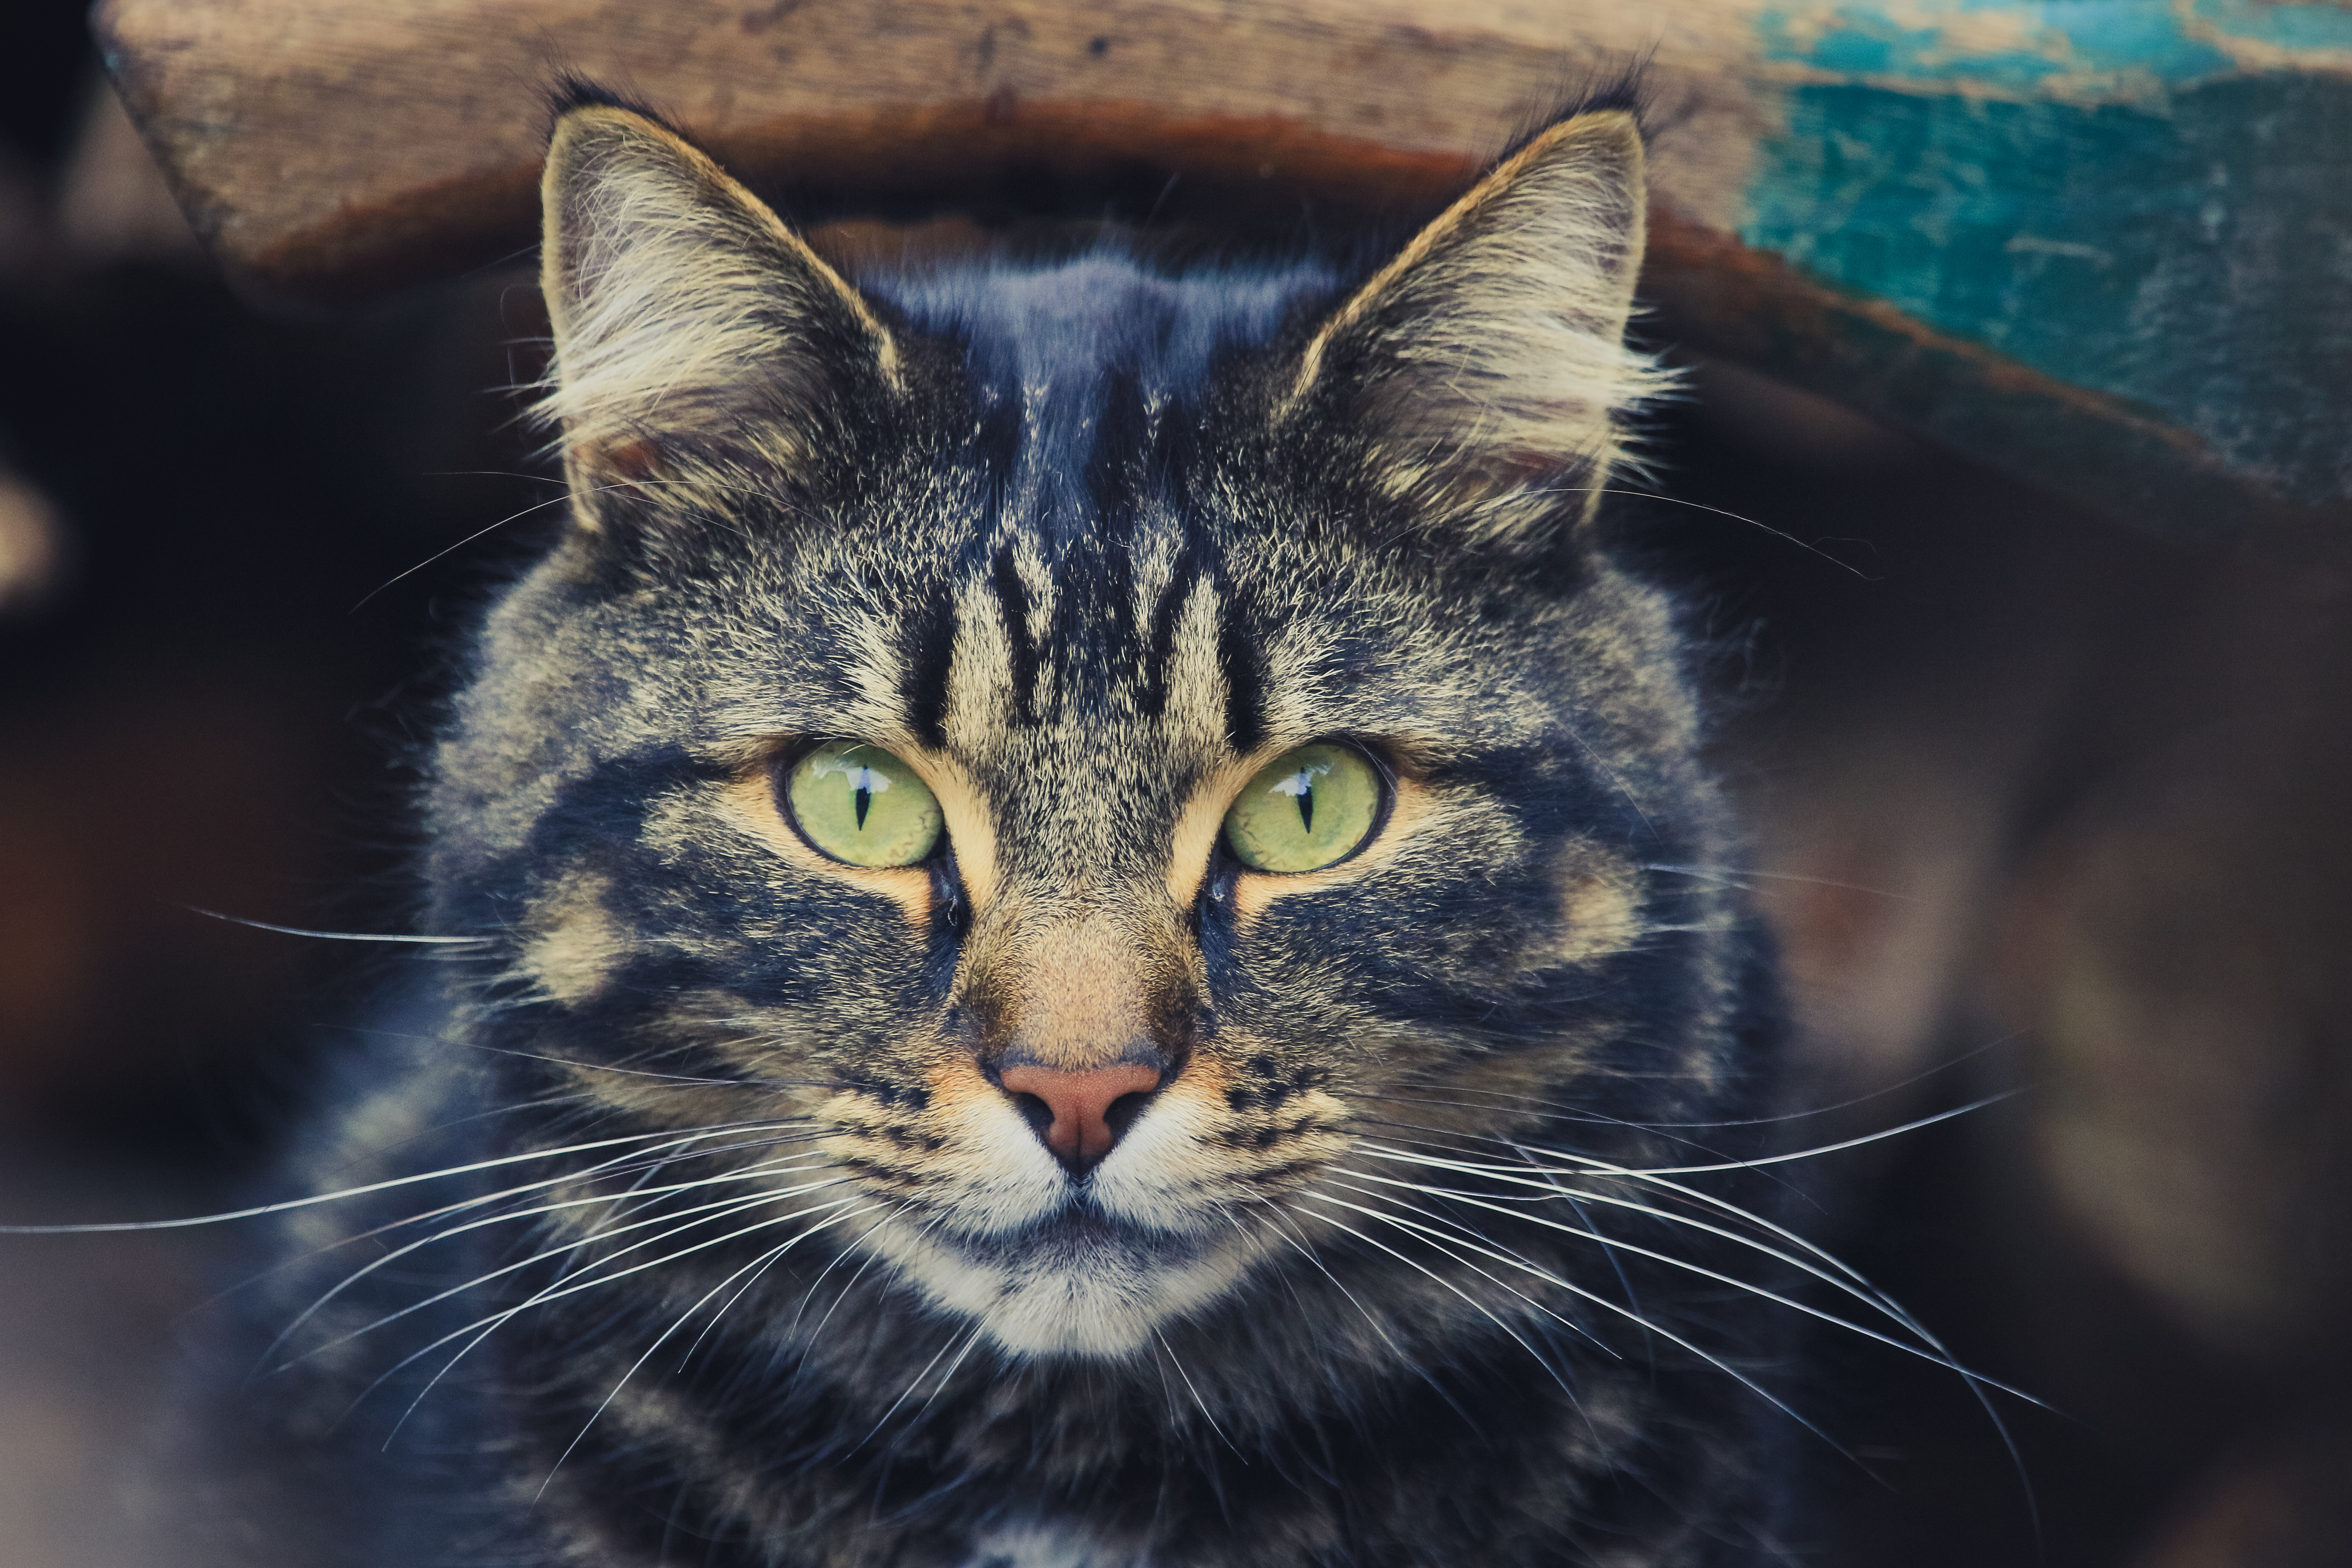 102293 download wallpaper Animals, Cat, Striped, Muzzle, Sight, Opinion, Eyes screensavers and pictures for free